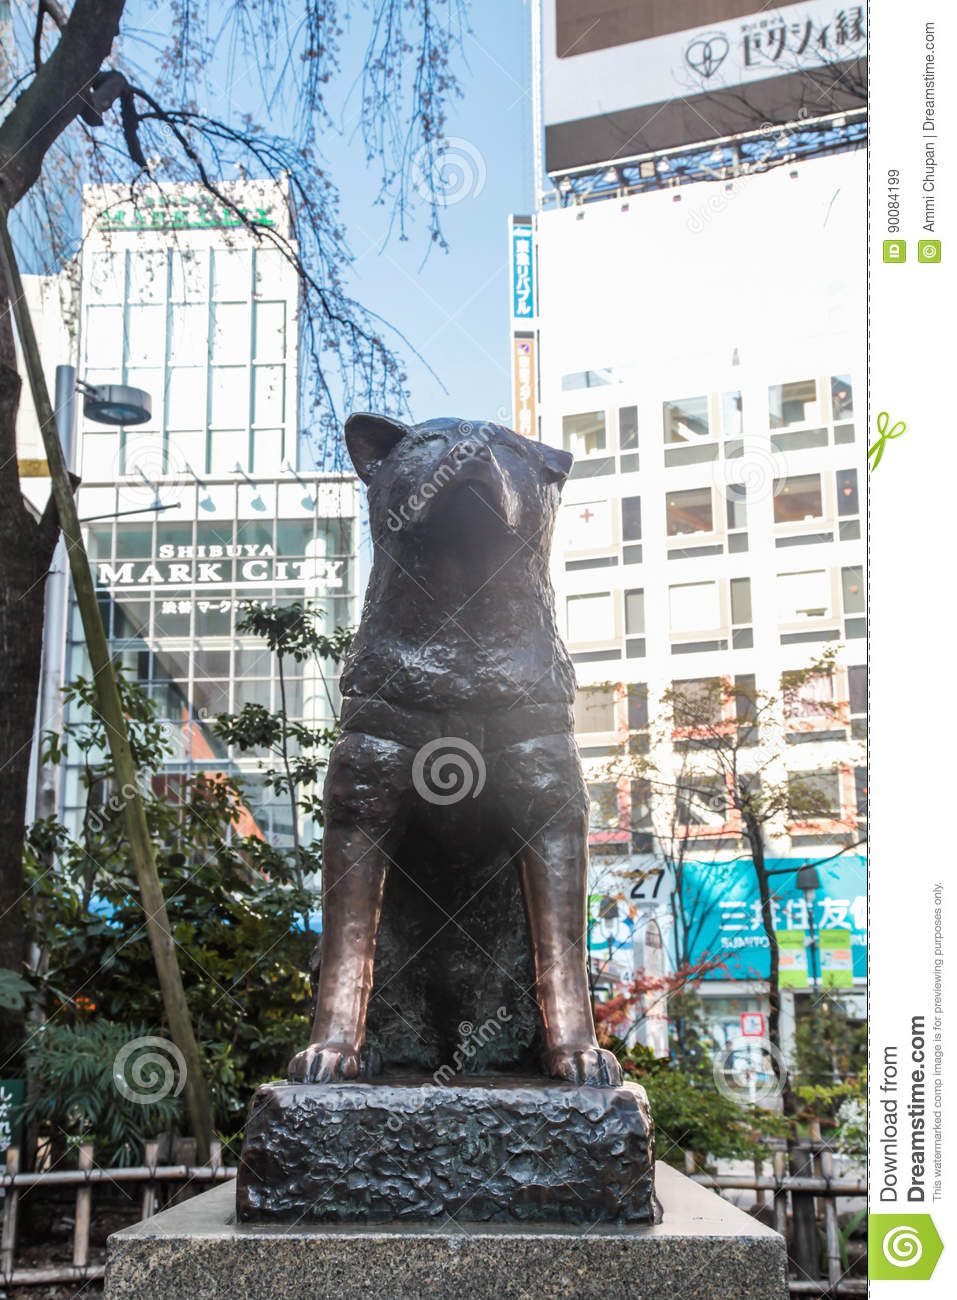 Hachiko Famous Japan Dog Statue As Landmark At Shibuya ...